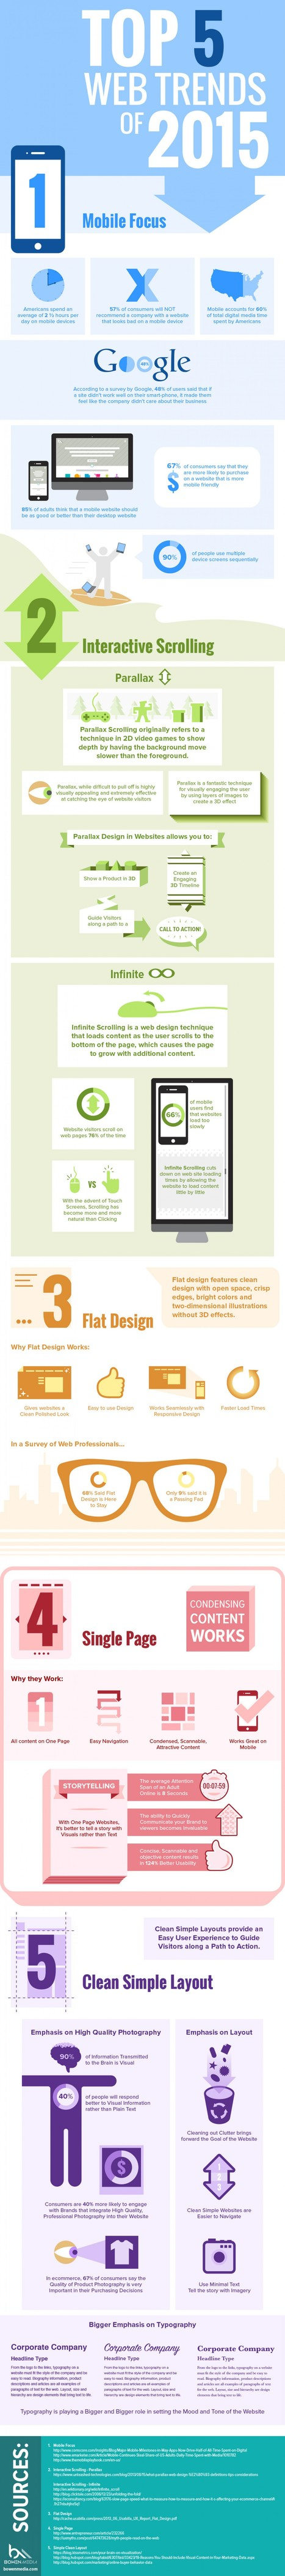 Top 5 Web Design Trends For 2015 | Infographic | visualizing social media | Scoop.it